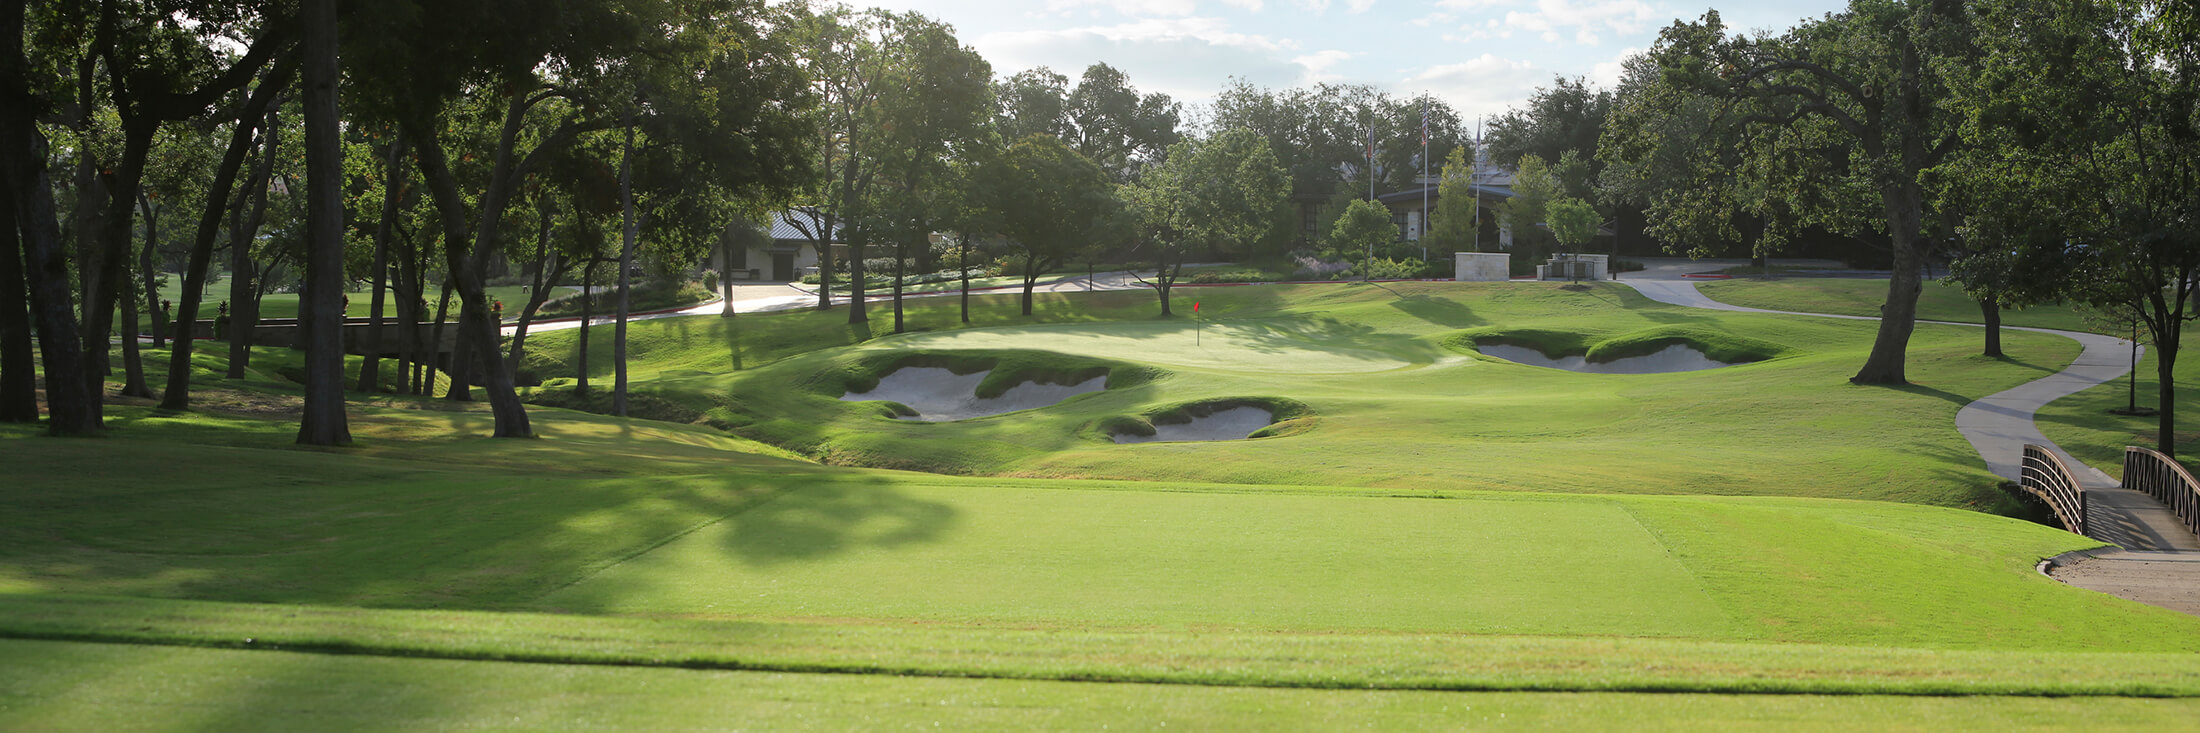 Golf Course Image - Northwood Club No. 9